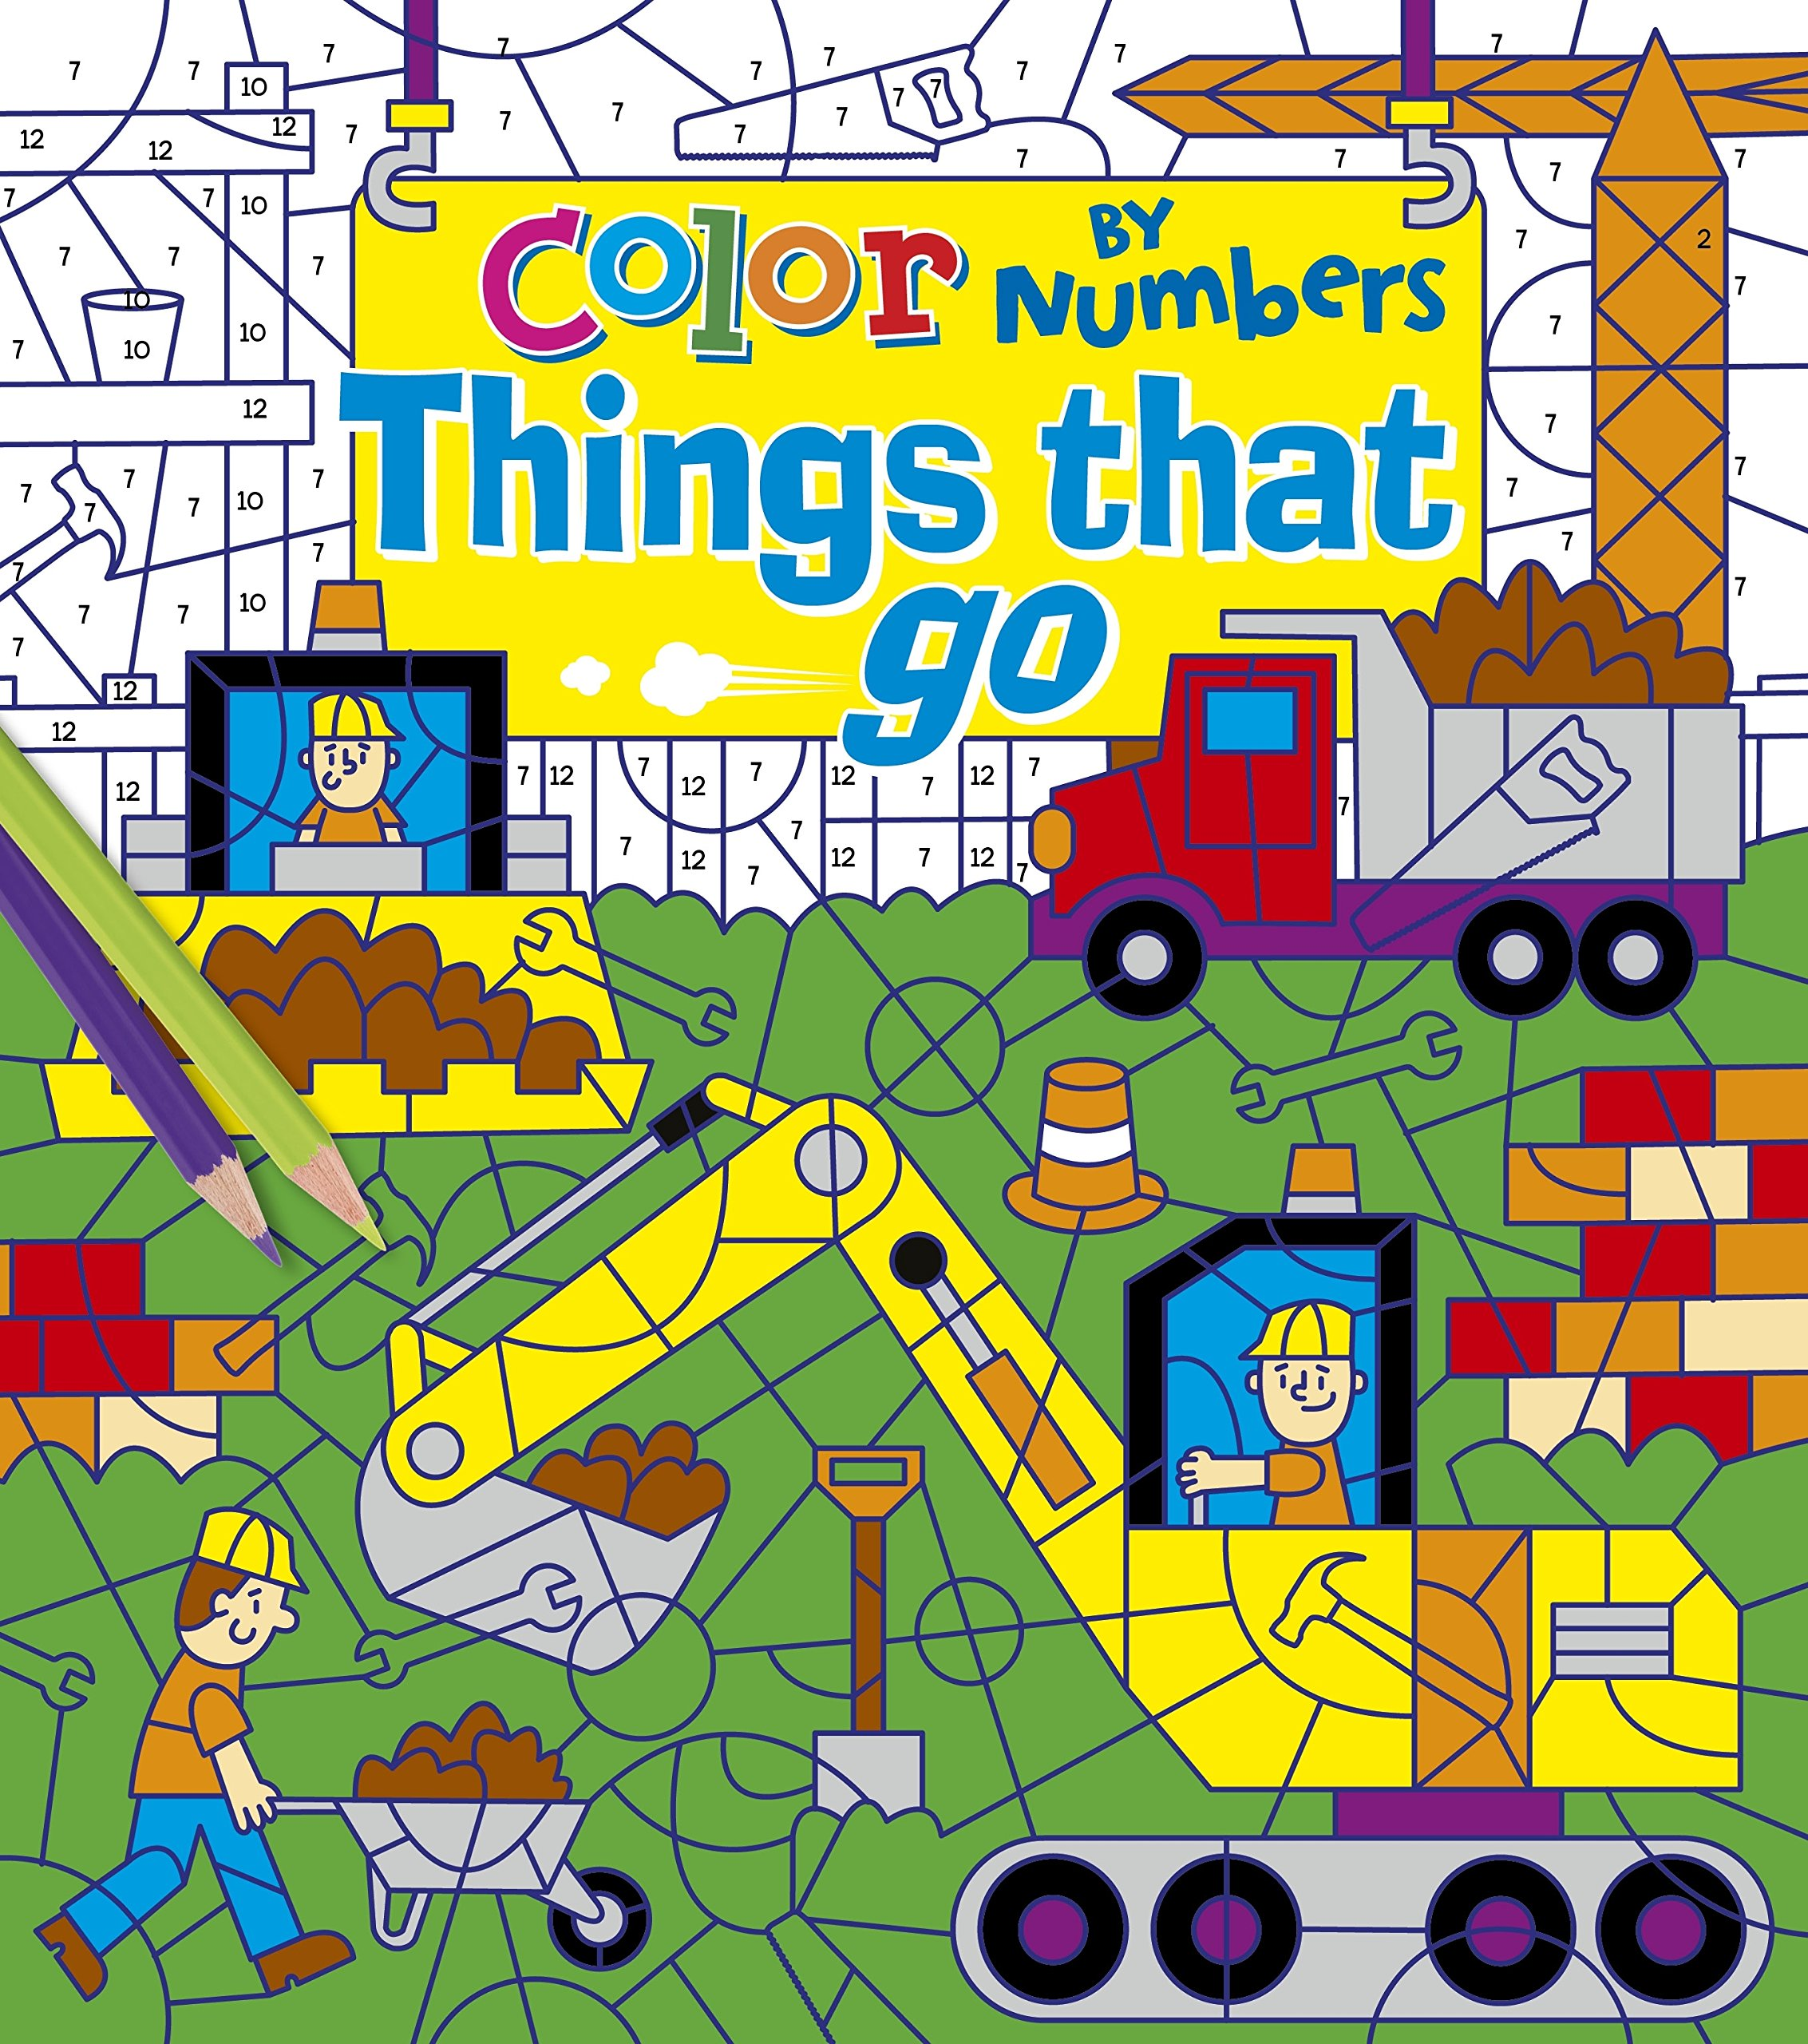 color-by-numbers-things-that-go